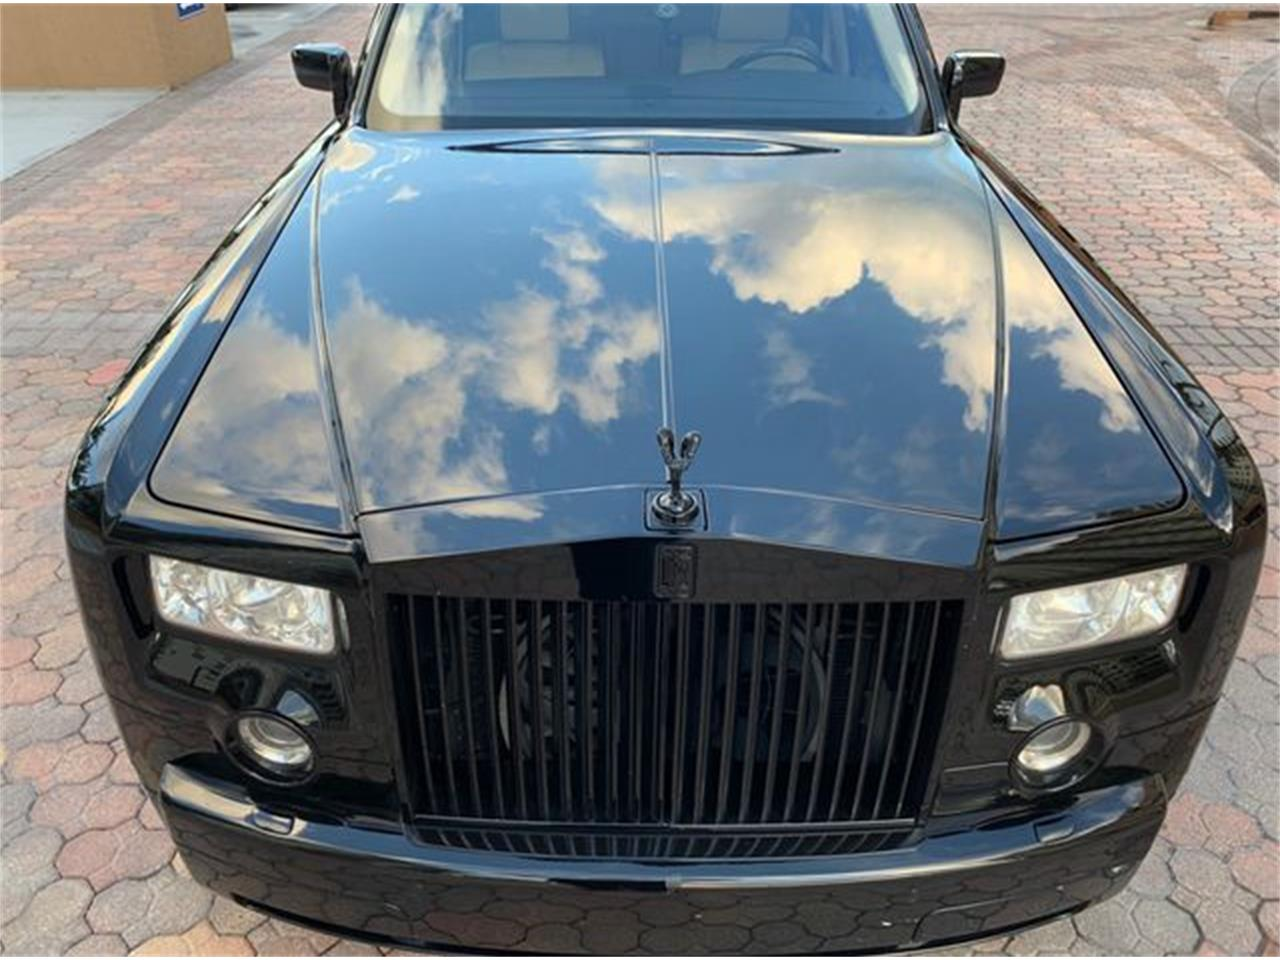 2006 Rolls-Royce Phantom for sale in Valley Park, MO – photo 85